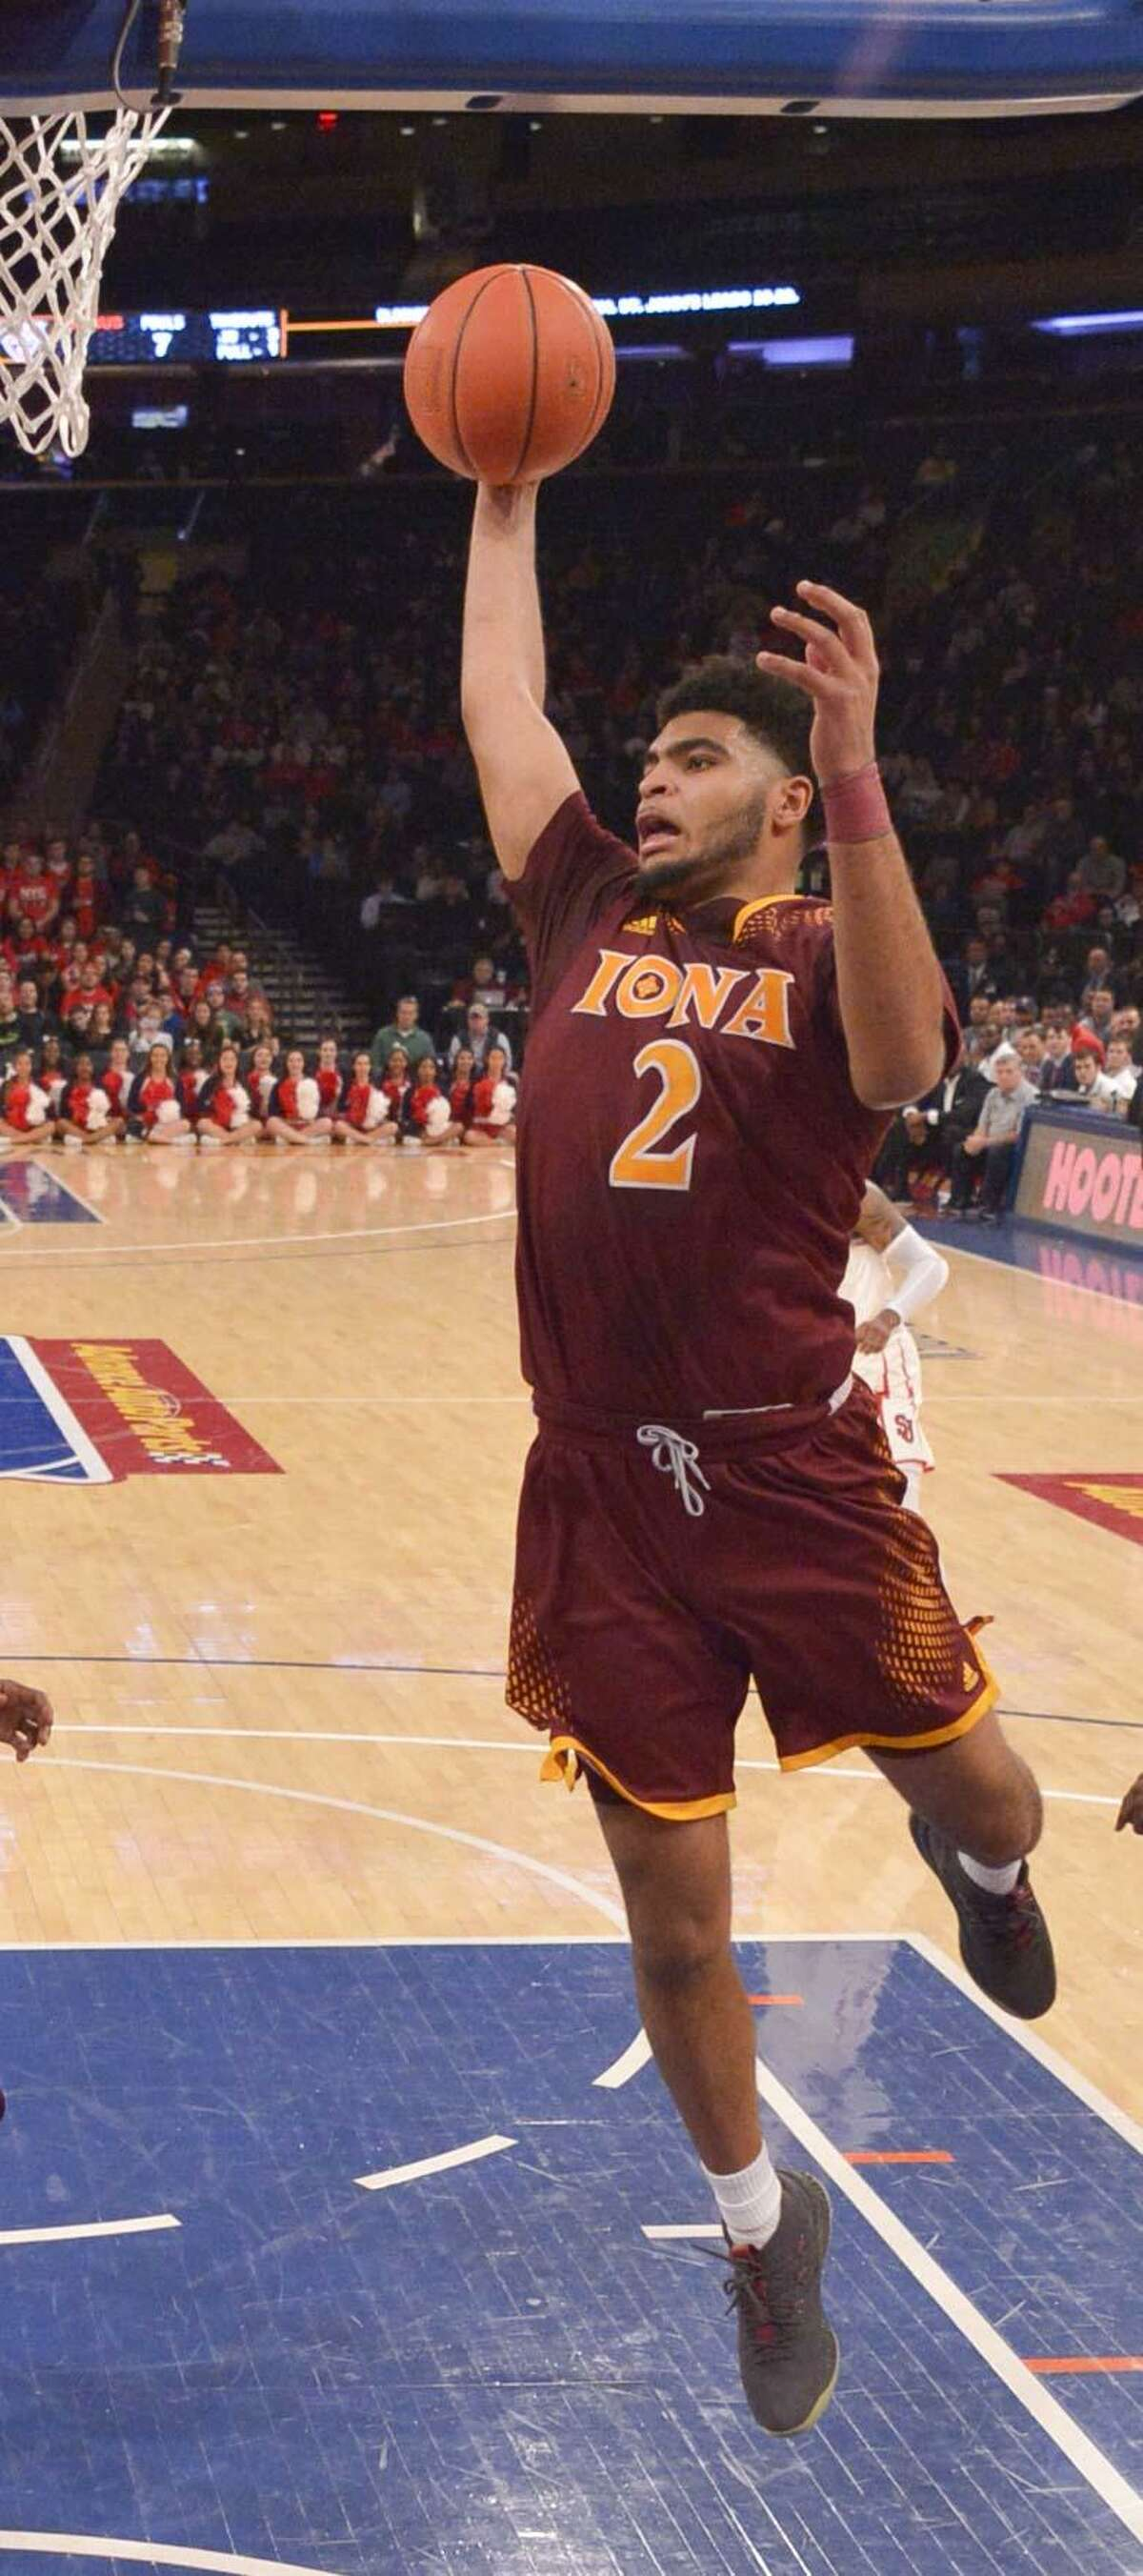 NEW YORK, NY - DECEMBER 17: E.J. Crawford #2 of the Iona Gaels rebounds against the St. John's Red Storm during the MSG Holiday Festival at Madison Square Garden on December 17, 2017 in New York City. (Photo by Porter Binks/Getty Images)